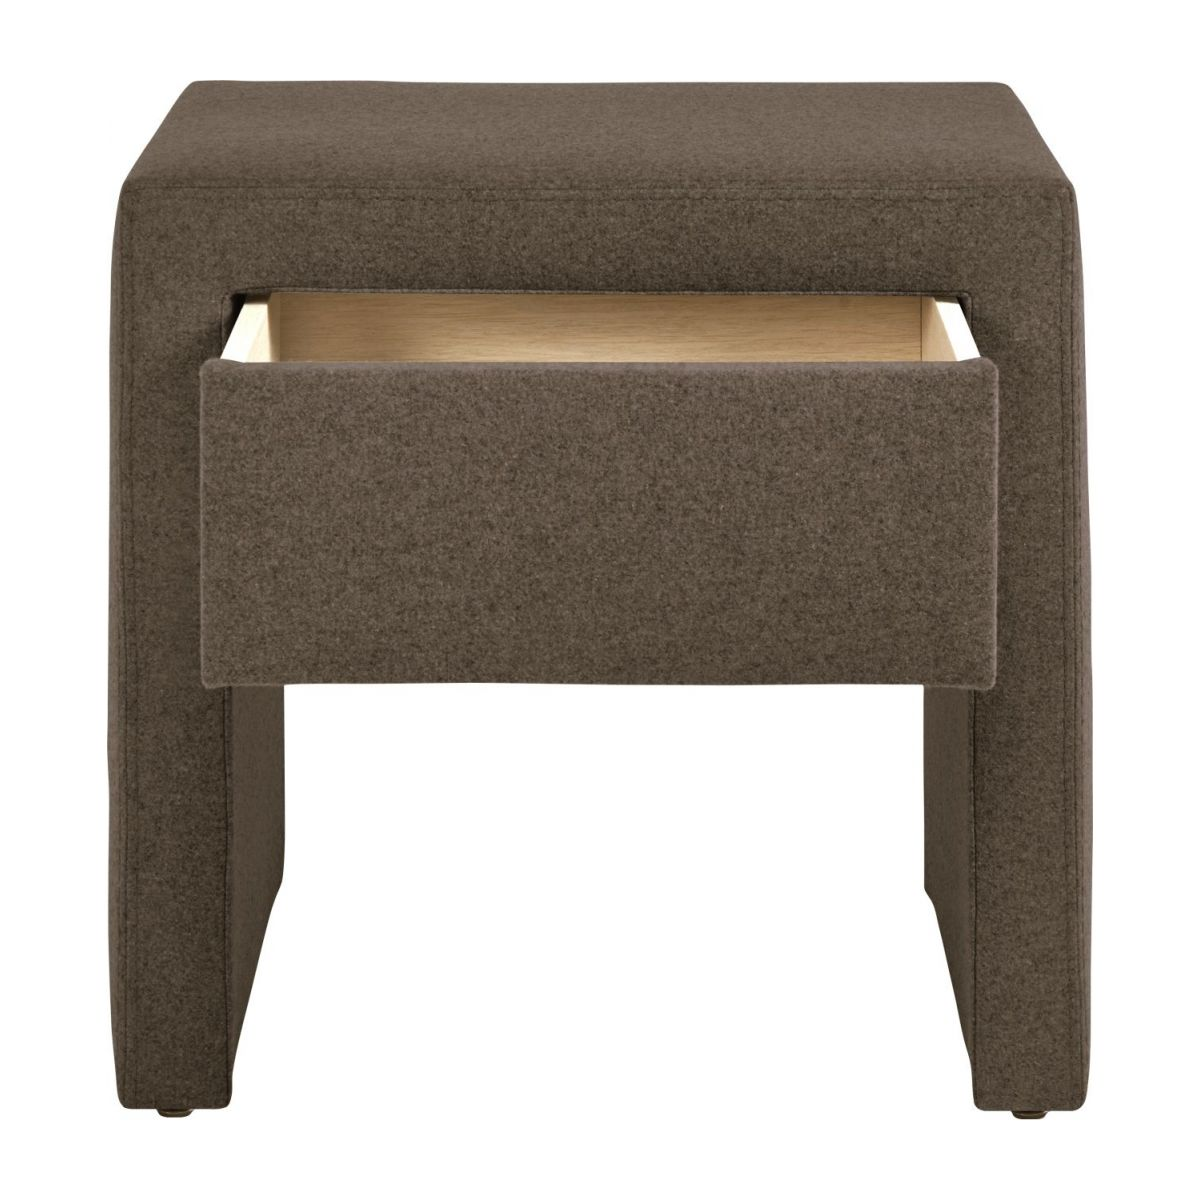 Table de chevet en feutrine - Beige n°3